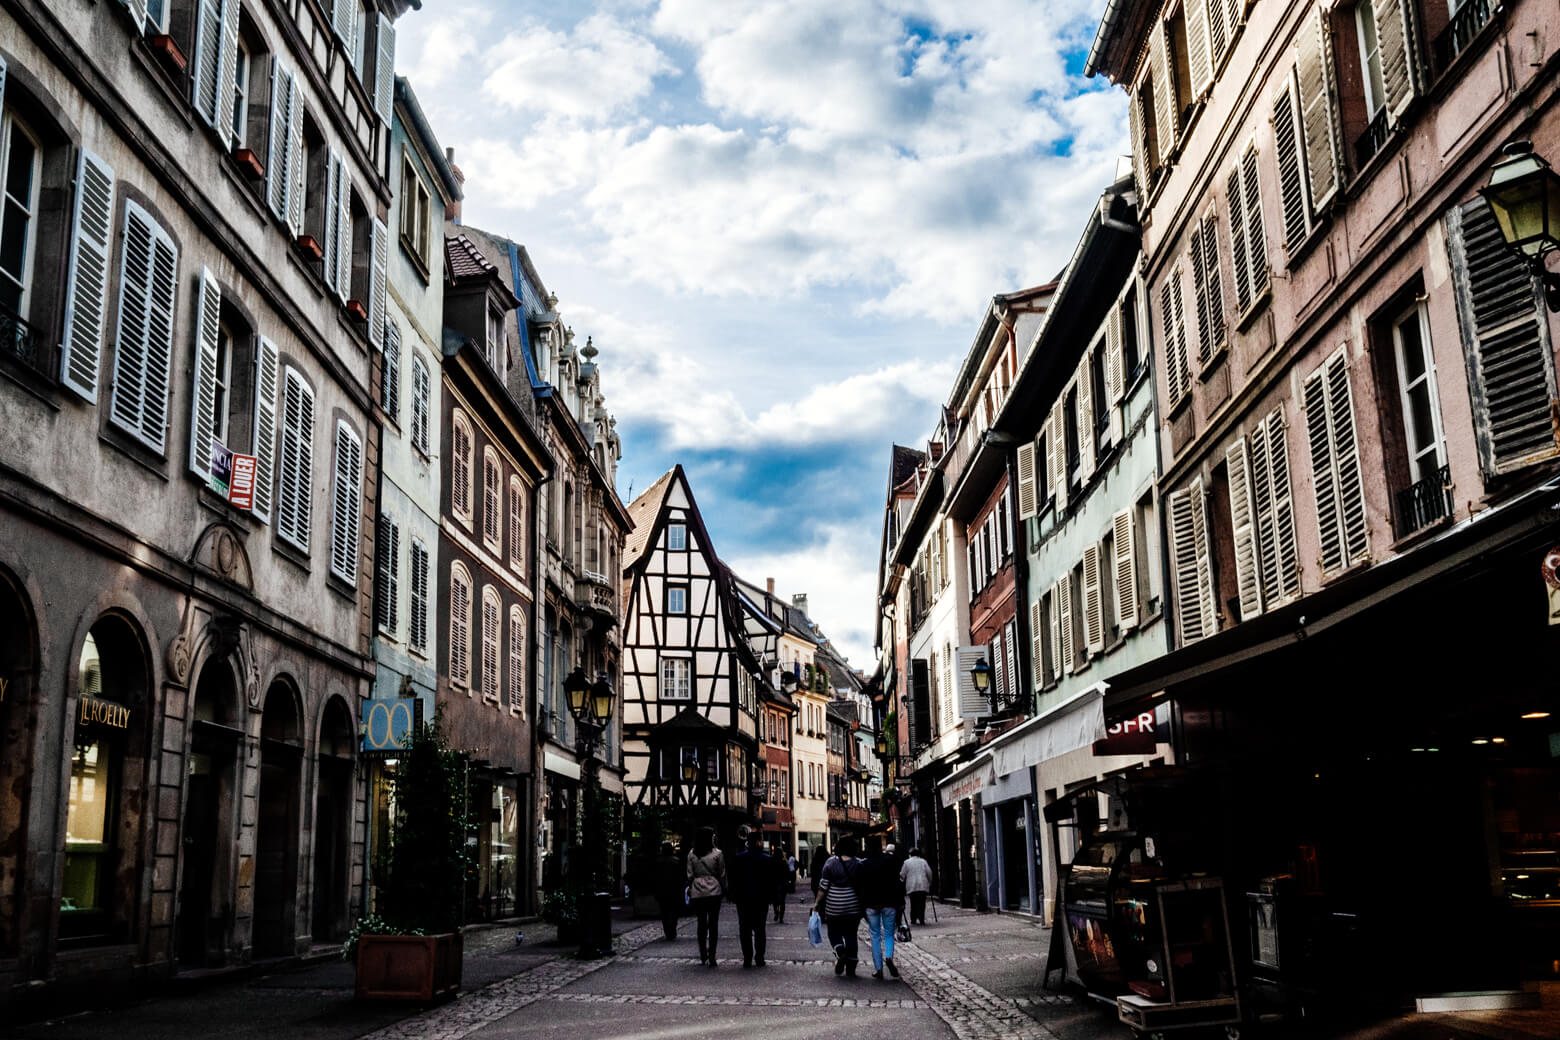 Colmar's Main Shopping Street